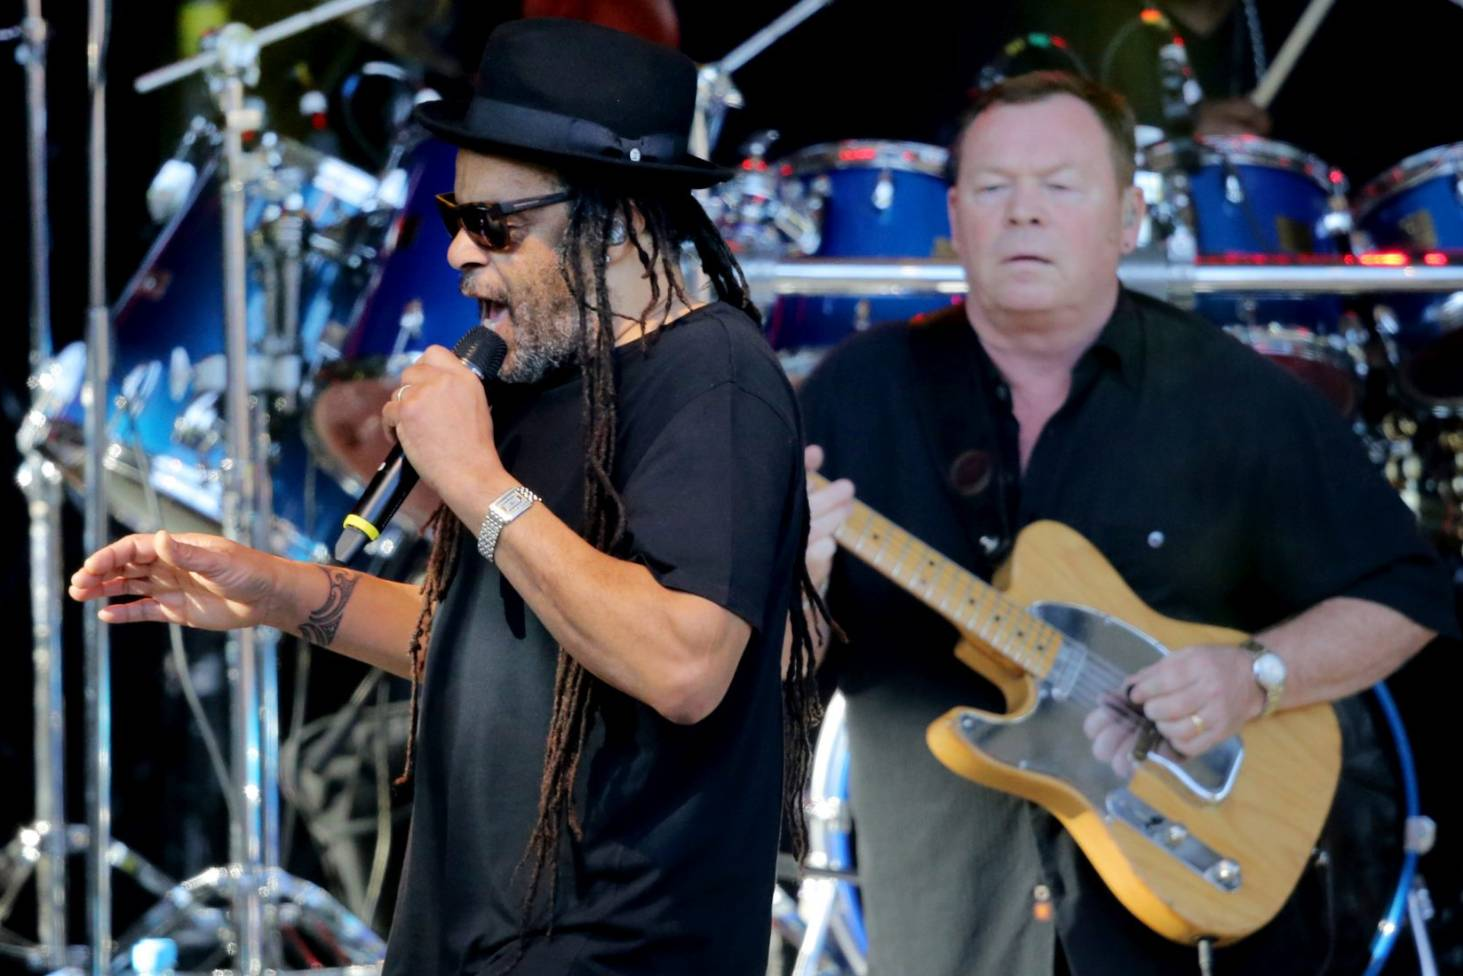 UB40 featuring Ali Campbell, Astro and Mickey Virtue adds